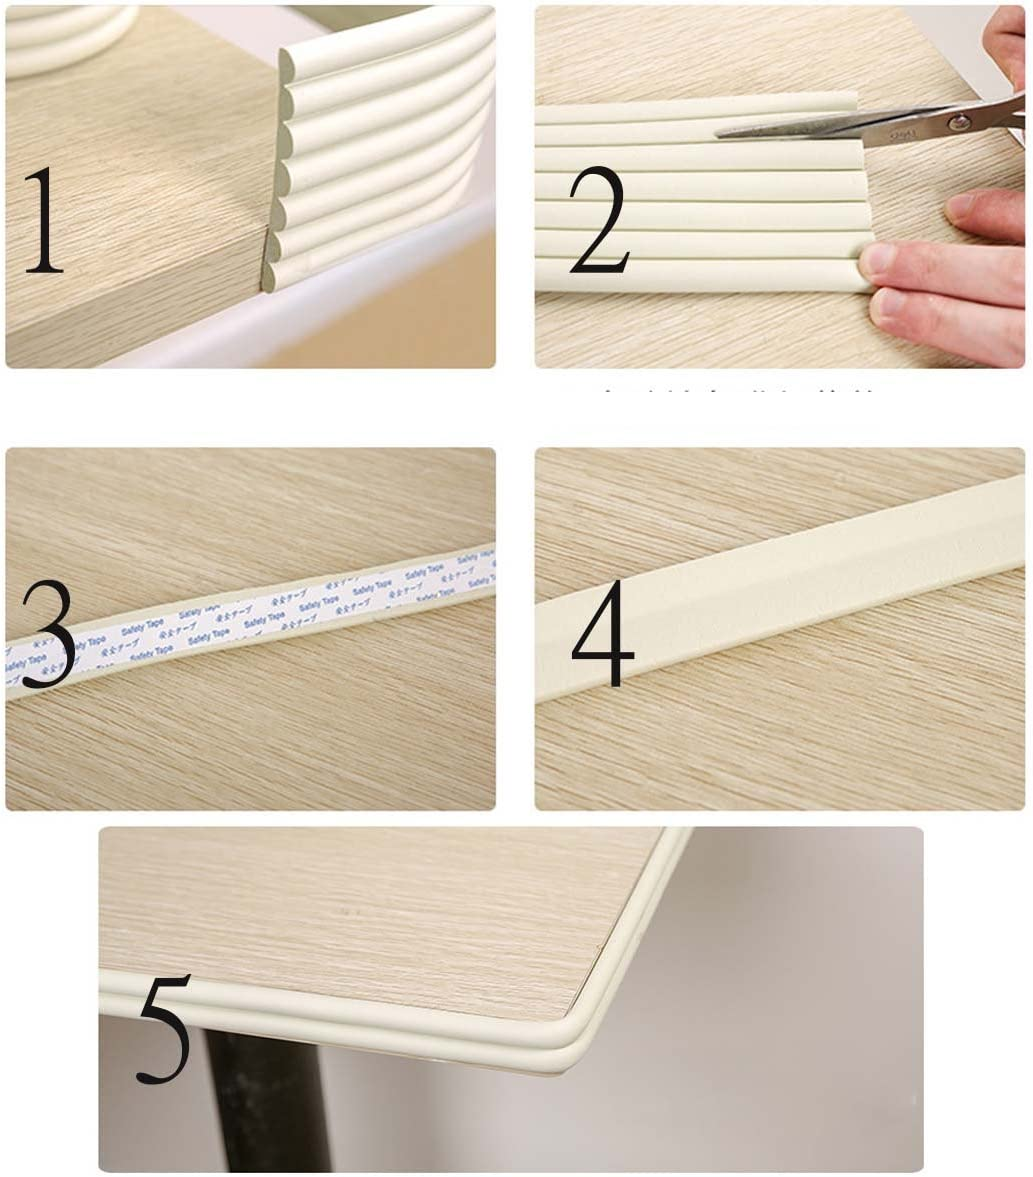 Ancdream 4M W-shaped Thicken Baby Safety Table Edge Corner Protector Guard Cushion Anti-collision Bumper Strip